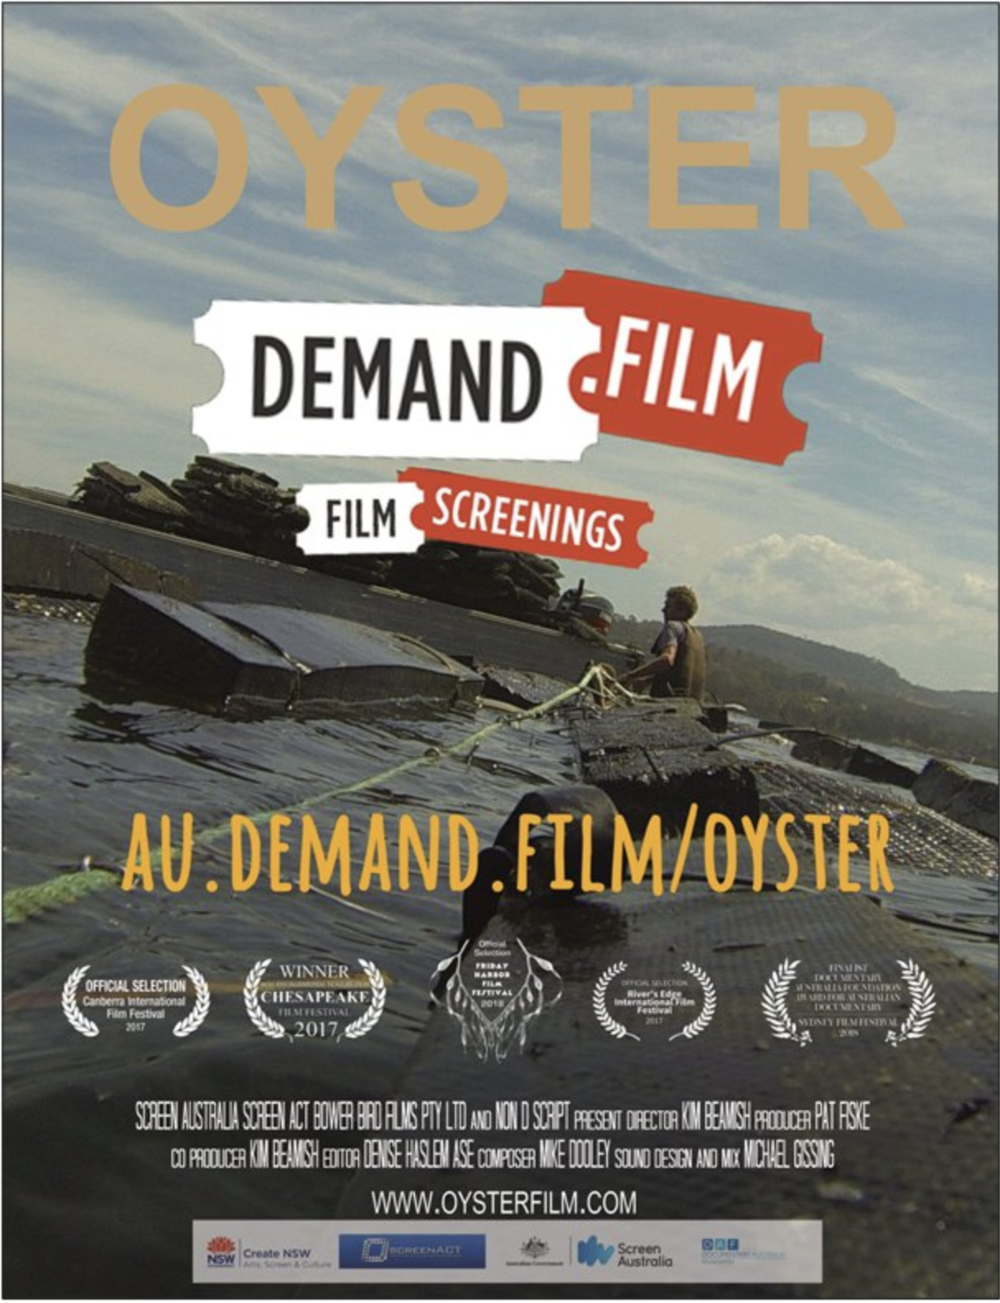 Screen the film at your local cinema. - DEMAND.FILM is an online platform that lets individuals and organisations choose a film they want to play at their local cinema. Here's how it works:1. Click hereto visit OYSTER on the DEMAND.FILM website2. Sign up to host the screening by becoming the event's 'promoter'.3. Indicate your preferred date, time and cinema and DEMAND.FILM will get in touch to confirm the details.4. Spread the word! Invite friends and community to buy tickets via the ticket link. Let us know (info@nondscript.com) and we will send you posters and flyers as well as help you promote the event. We may even be able to come?5. Once enough tickets are sold (usually 40–50) by a designated date, the screening is confirmed. If not enough tickets are sold, no one is charged and the event is cancelled.